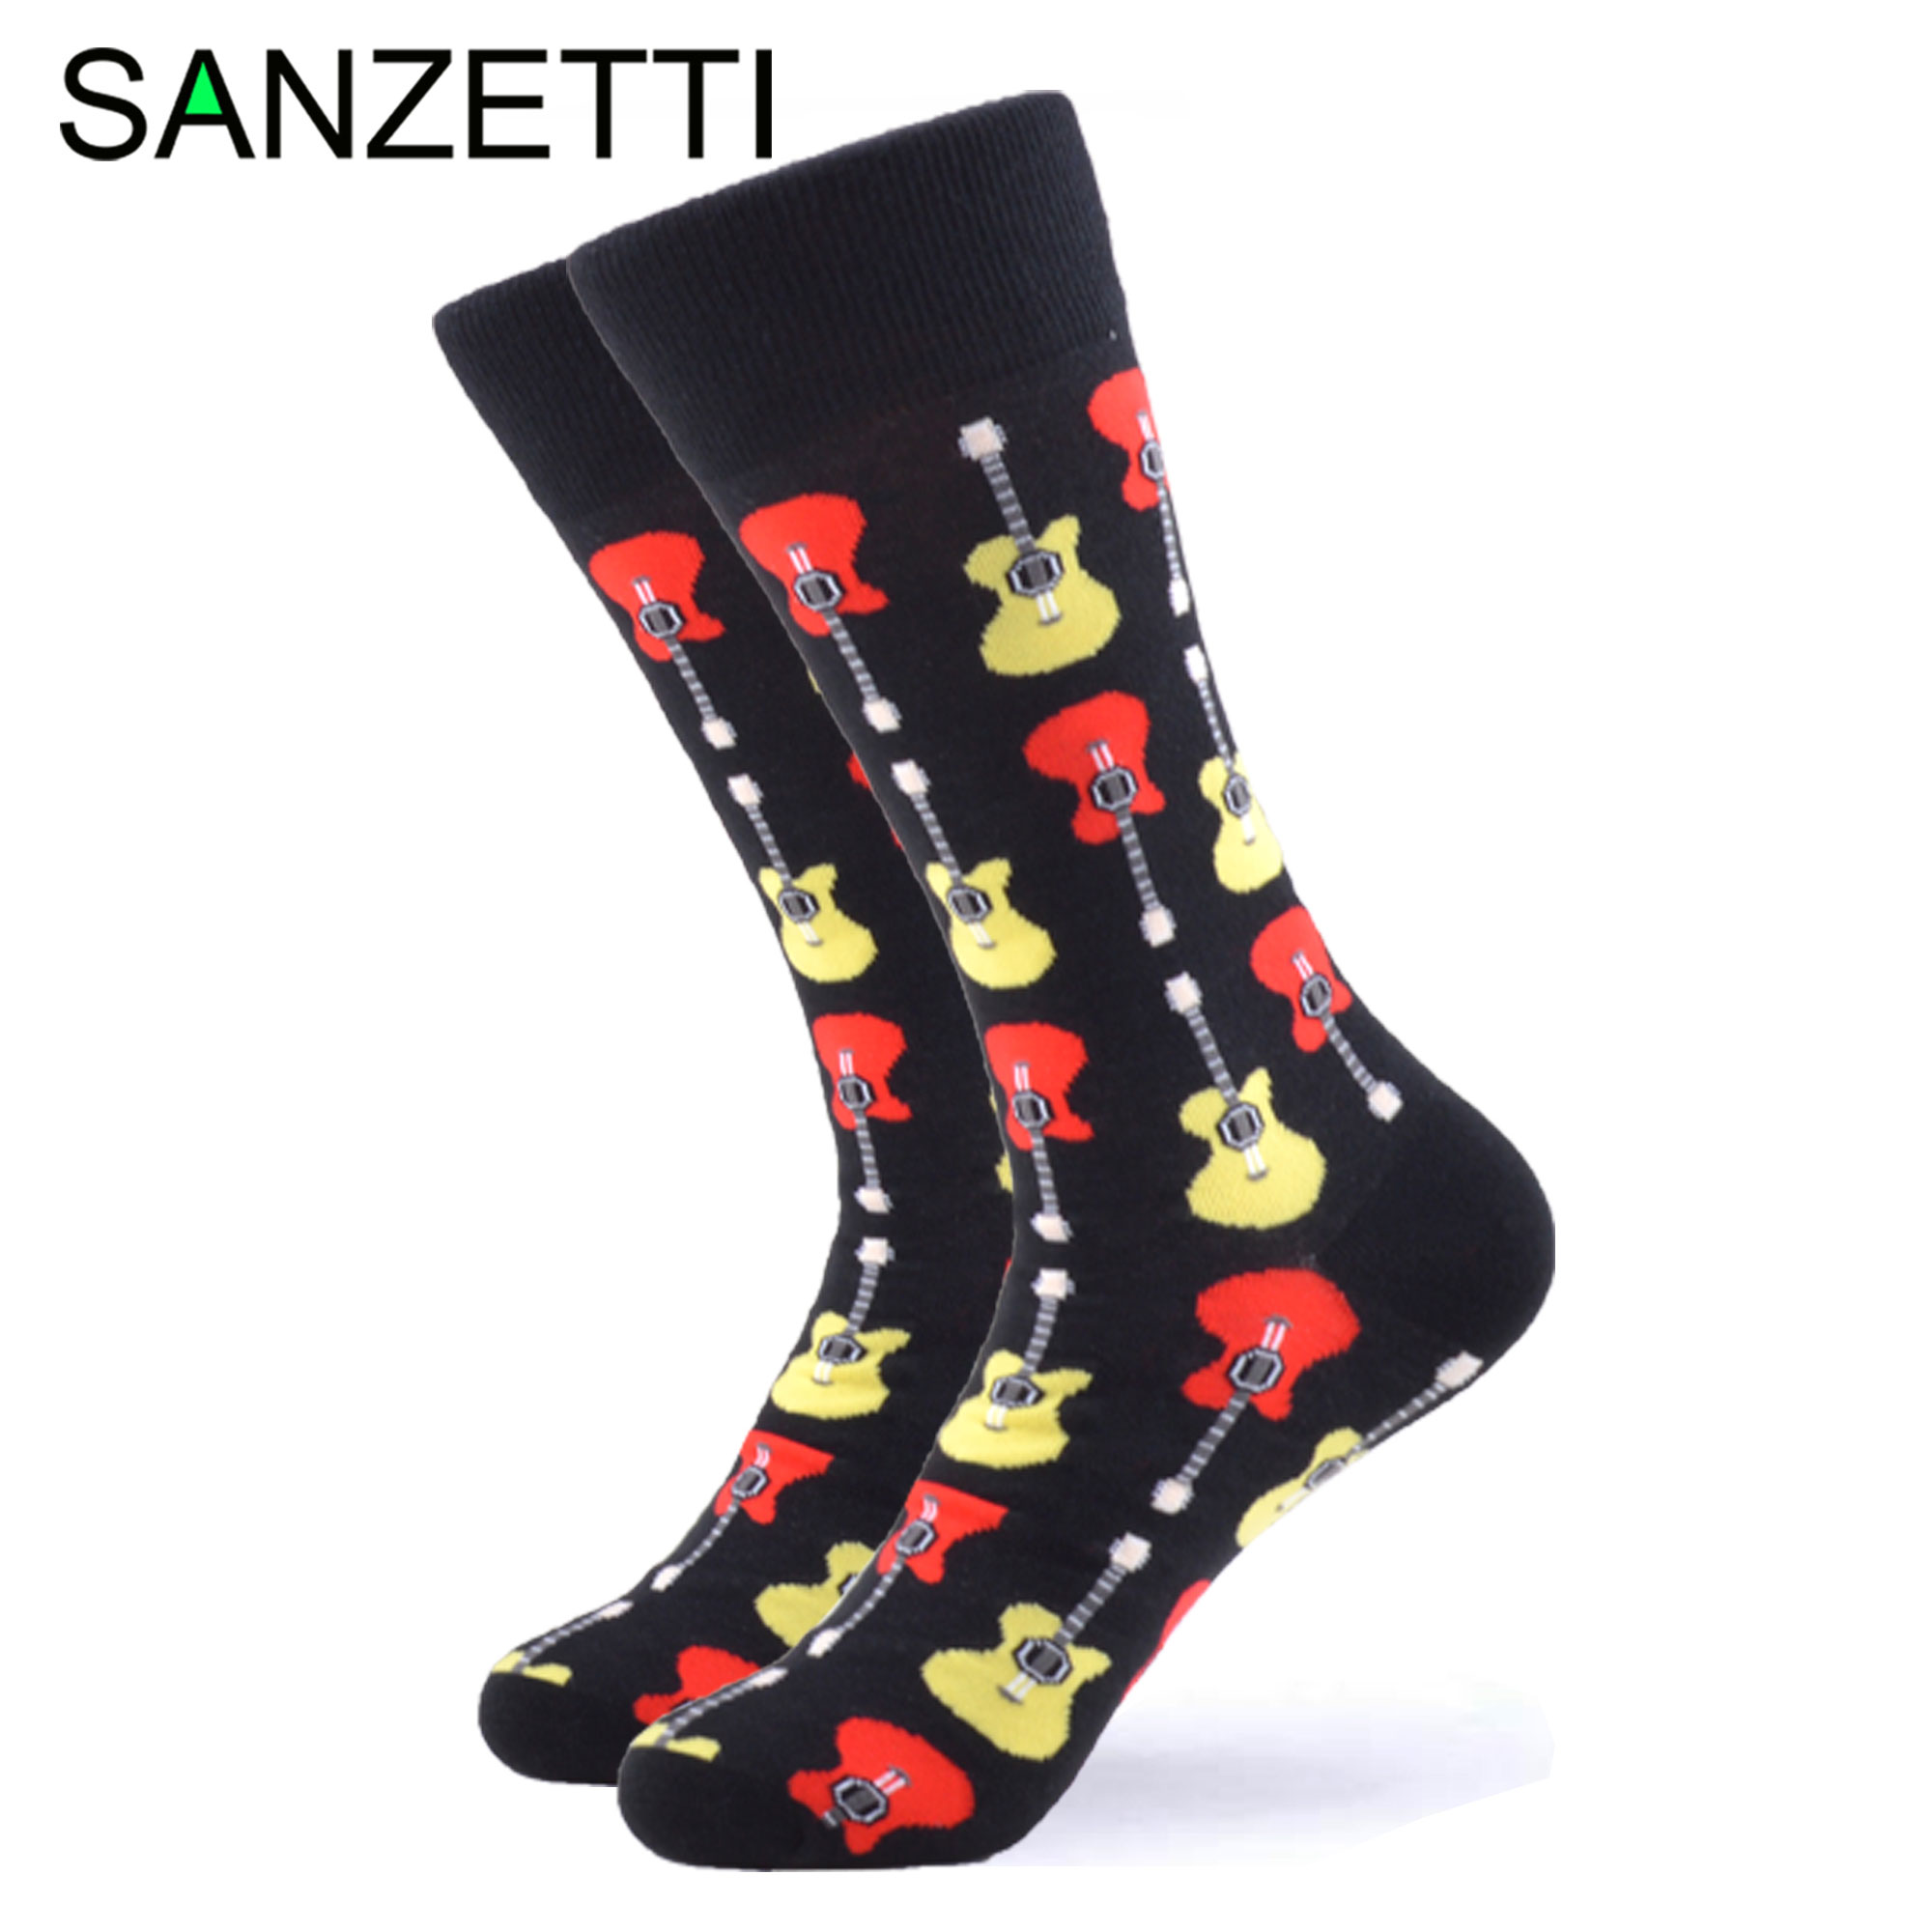 SANZETTI 1 Pair New Style Happy Socks High Quality Men's Colorful Combed Cotton Guitar Pattern Novelty Gift Wedding Dress Socks